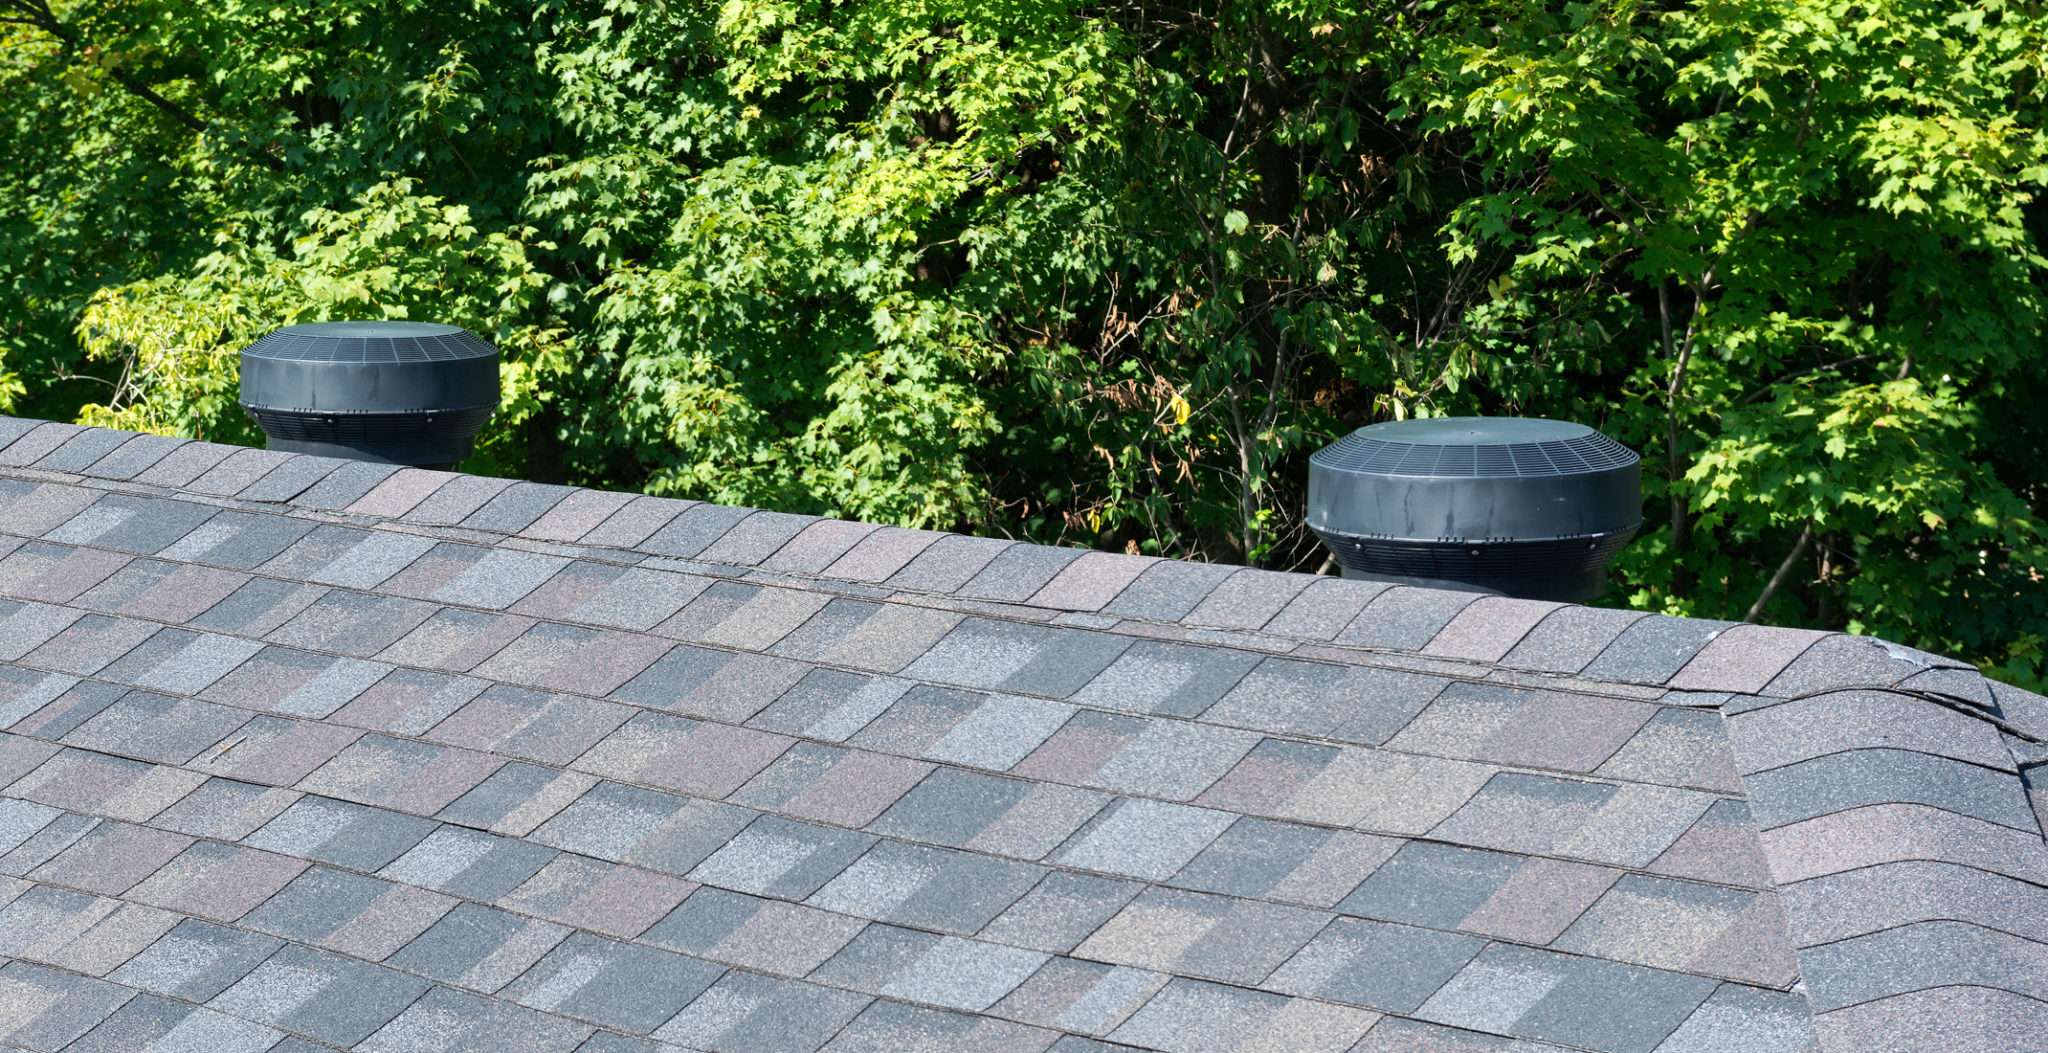 Roof Vents 101 Install For Proper Attic Ventilation Iko Kansas City Fans Whole House Fan Installation Source Nrha And Logic